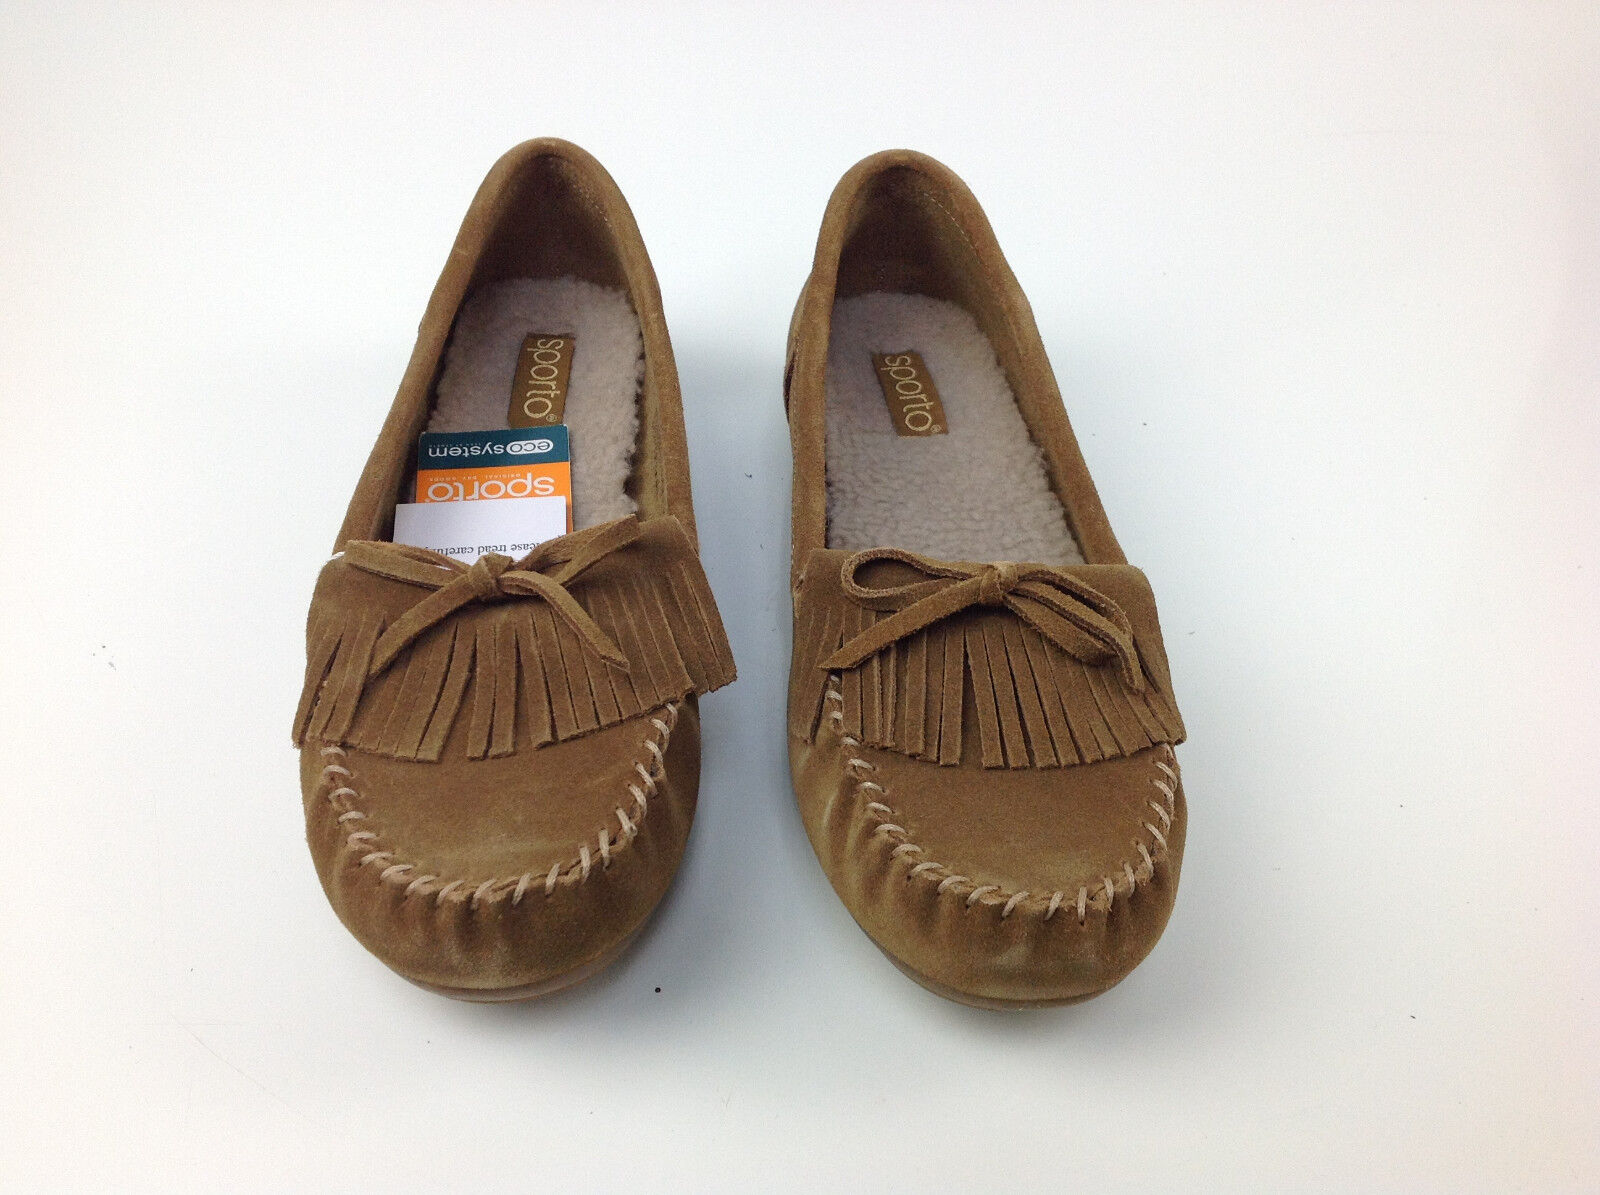 Sporto® Patty Suede Loafer with Fringe Detail, marron, Taille 6 M